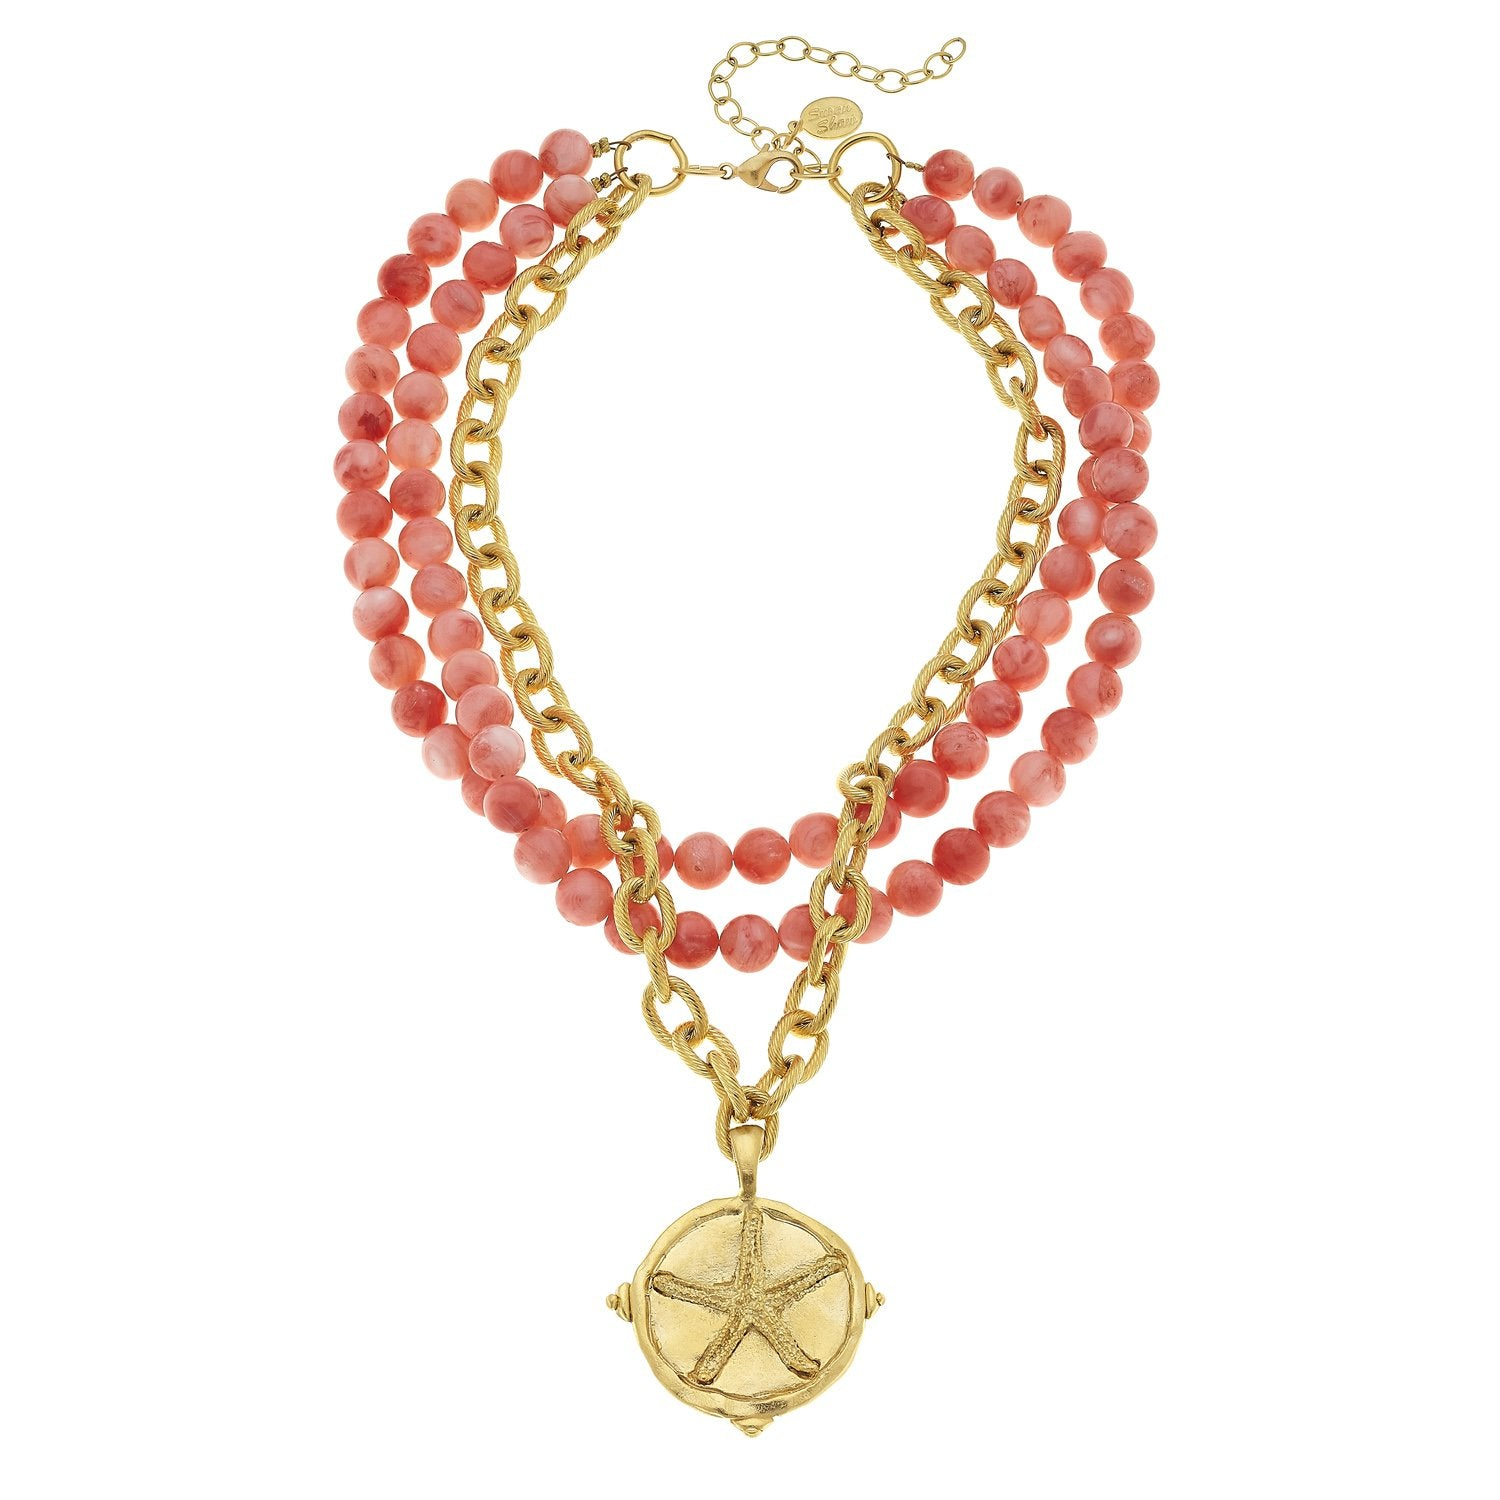 Handcast Gold Starfish and Coral Necklace